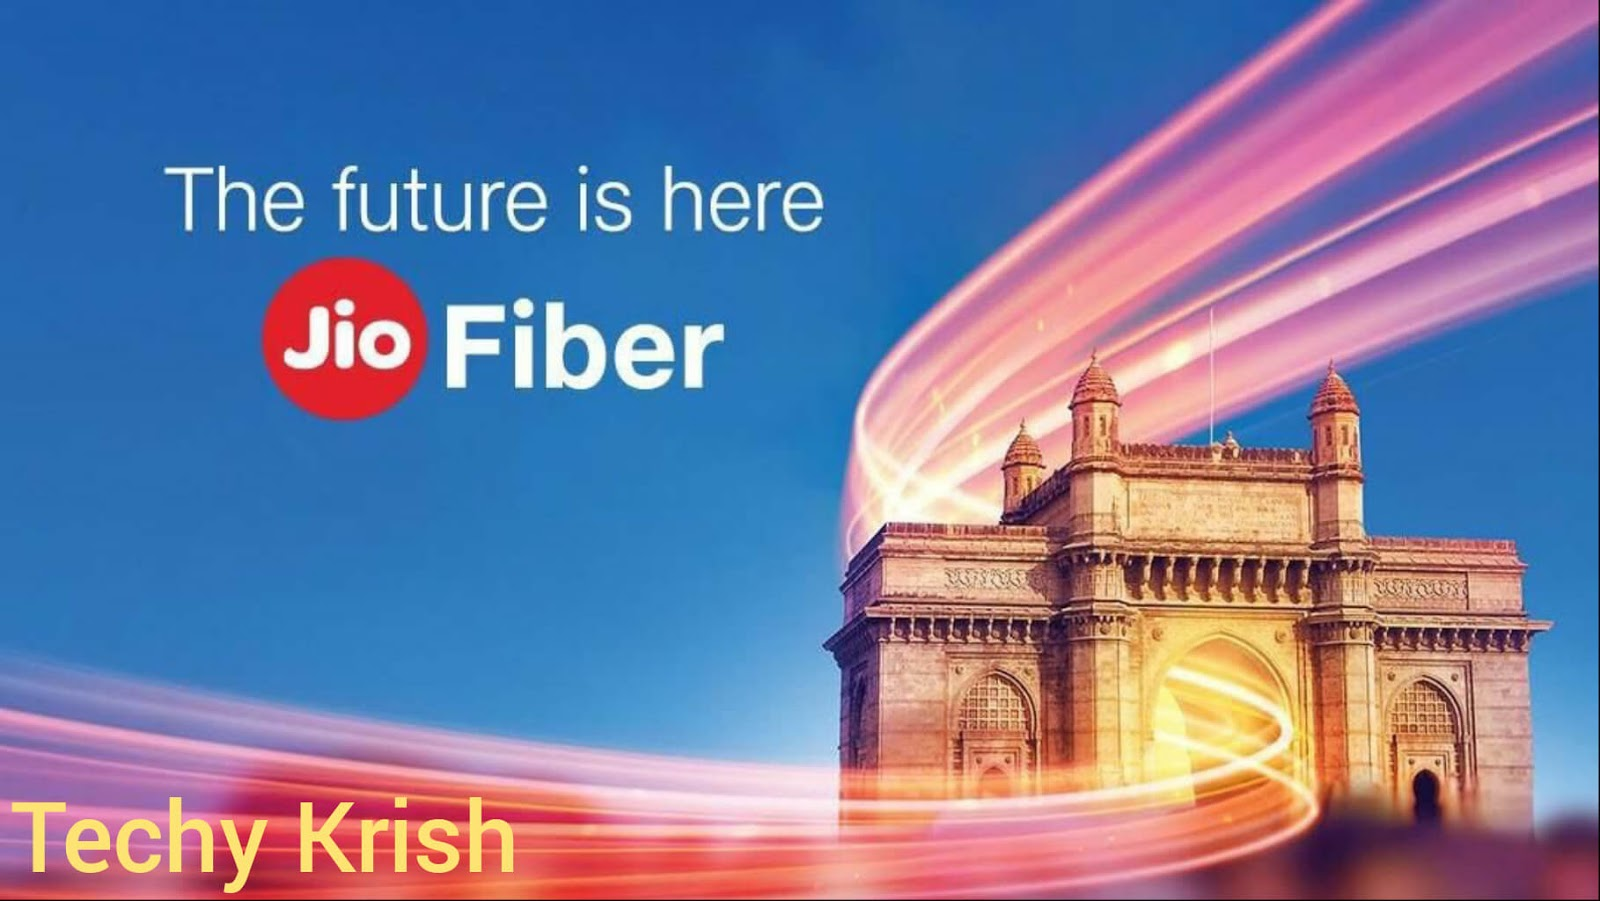 Jio Fiber - Complete Information, Price, Plan and How to book Jio Fiber?